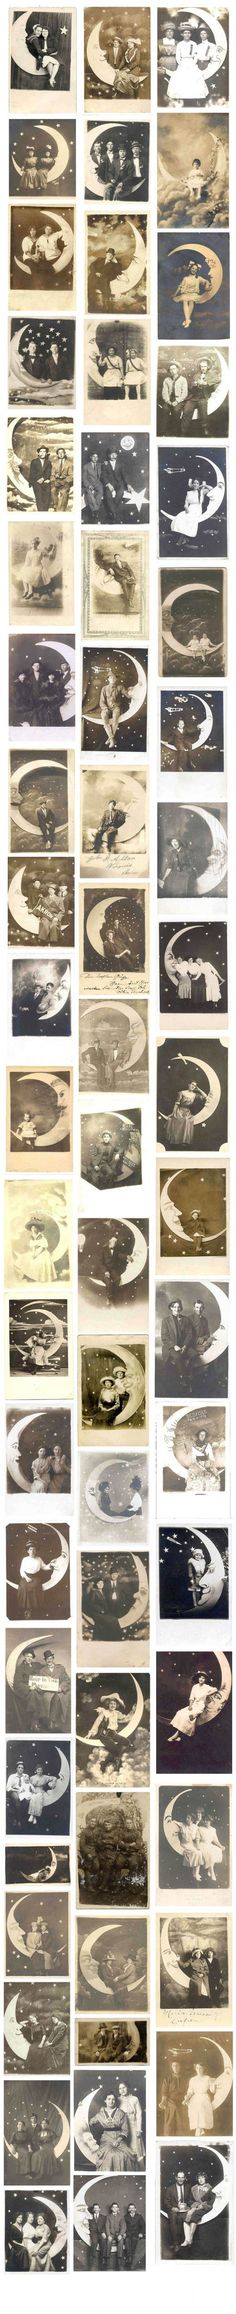 possible idea prom theme-shoot 4 the moon-land among the stars?    Sitting on a paper moon.